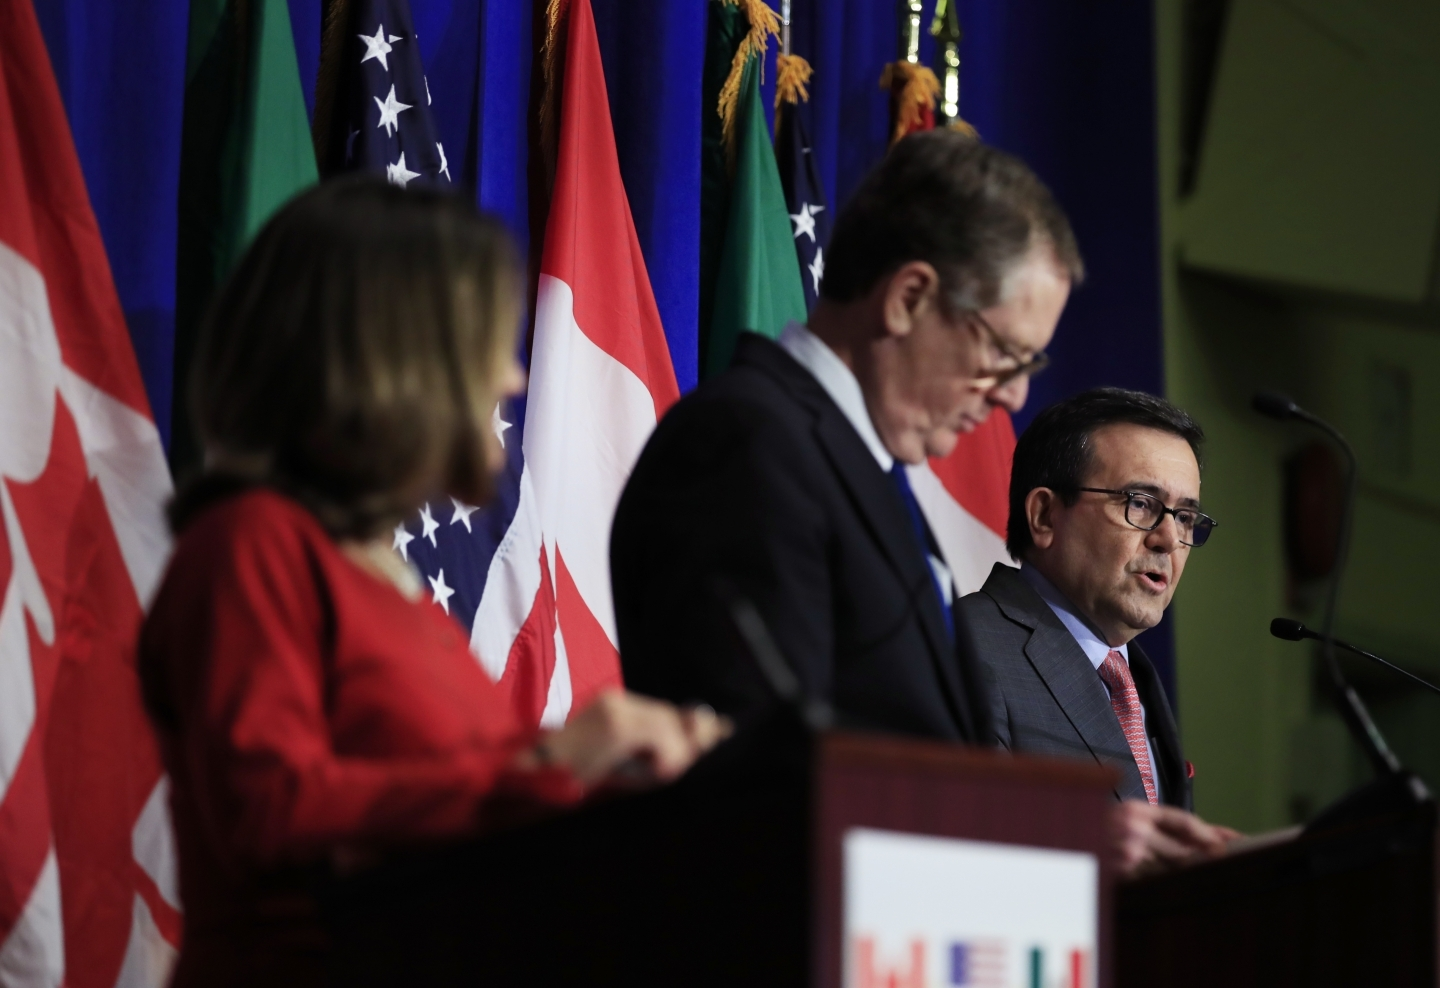 Chrystia Freeland, Robert Lighthizer and Ildefonso Guajardo Villarreal give a trilateral statement during an early round of NAFTA talks. (AP Photo/Manuel Balce Ceneta)